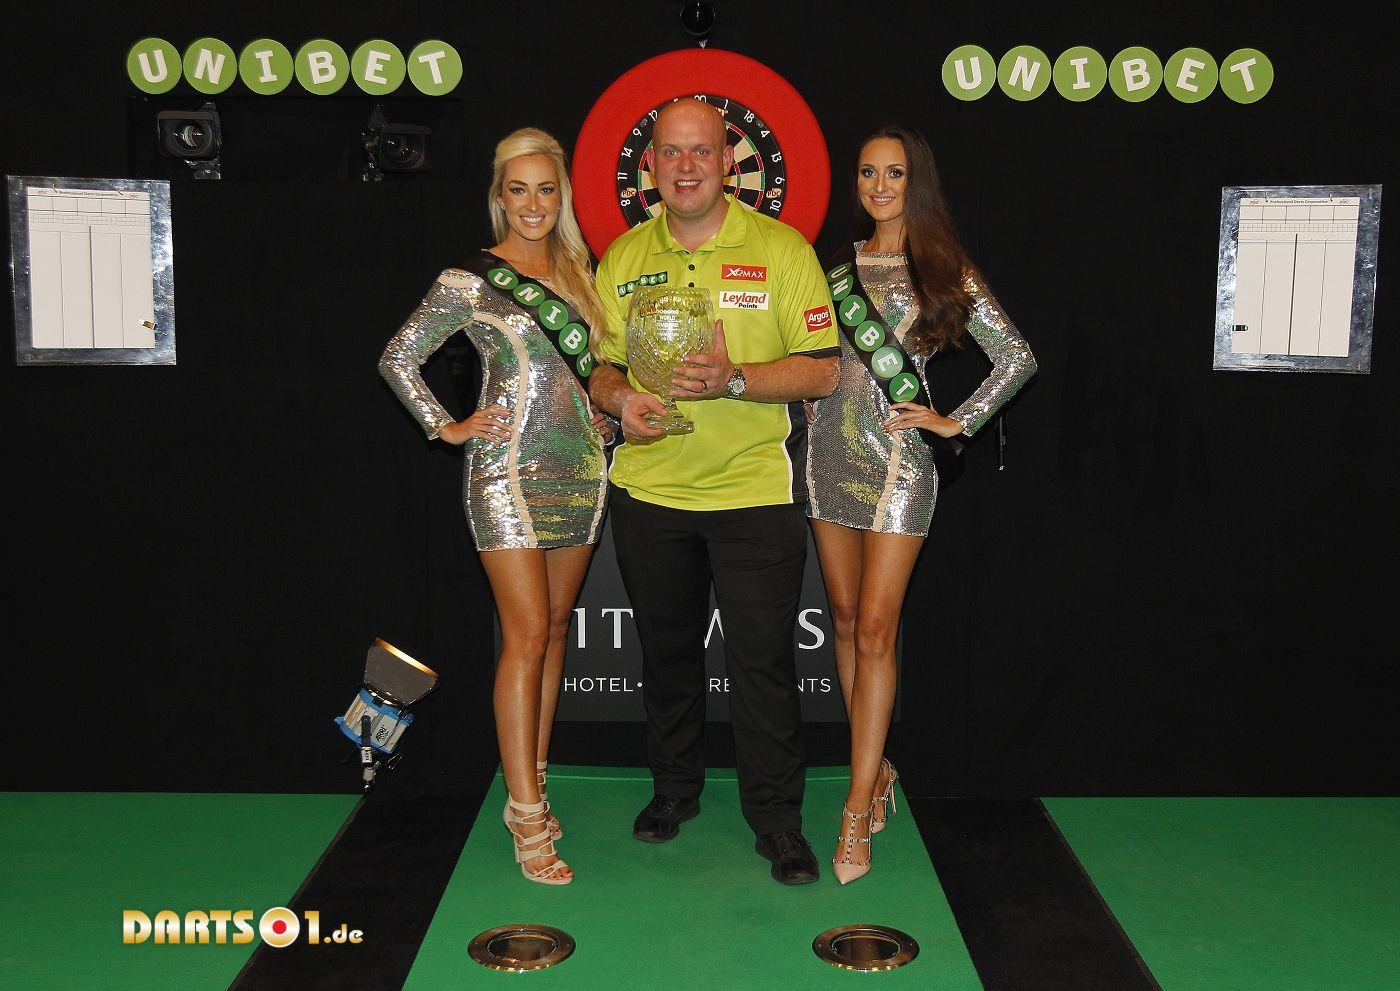 pdc world grand prix